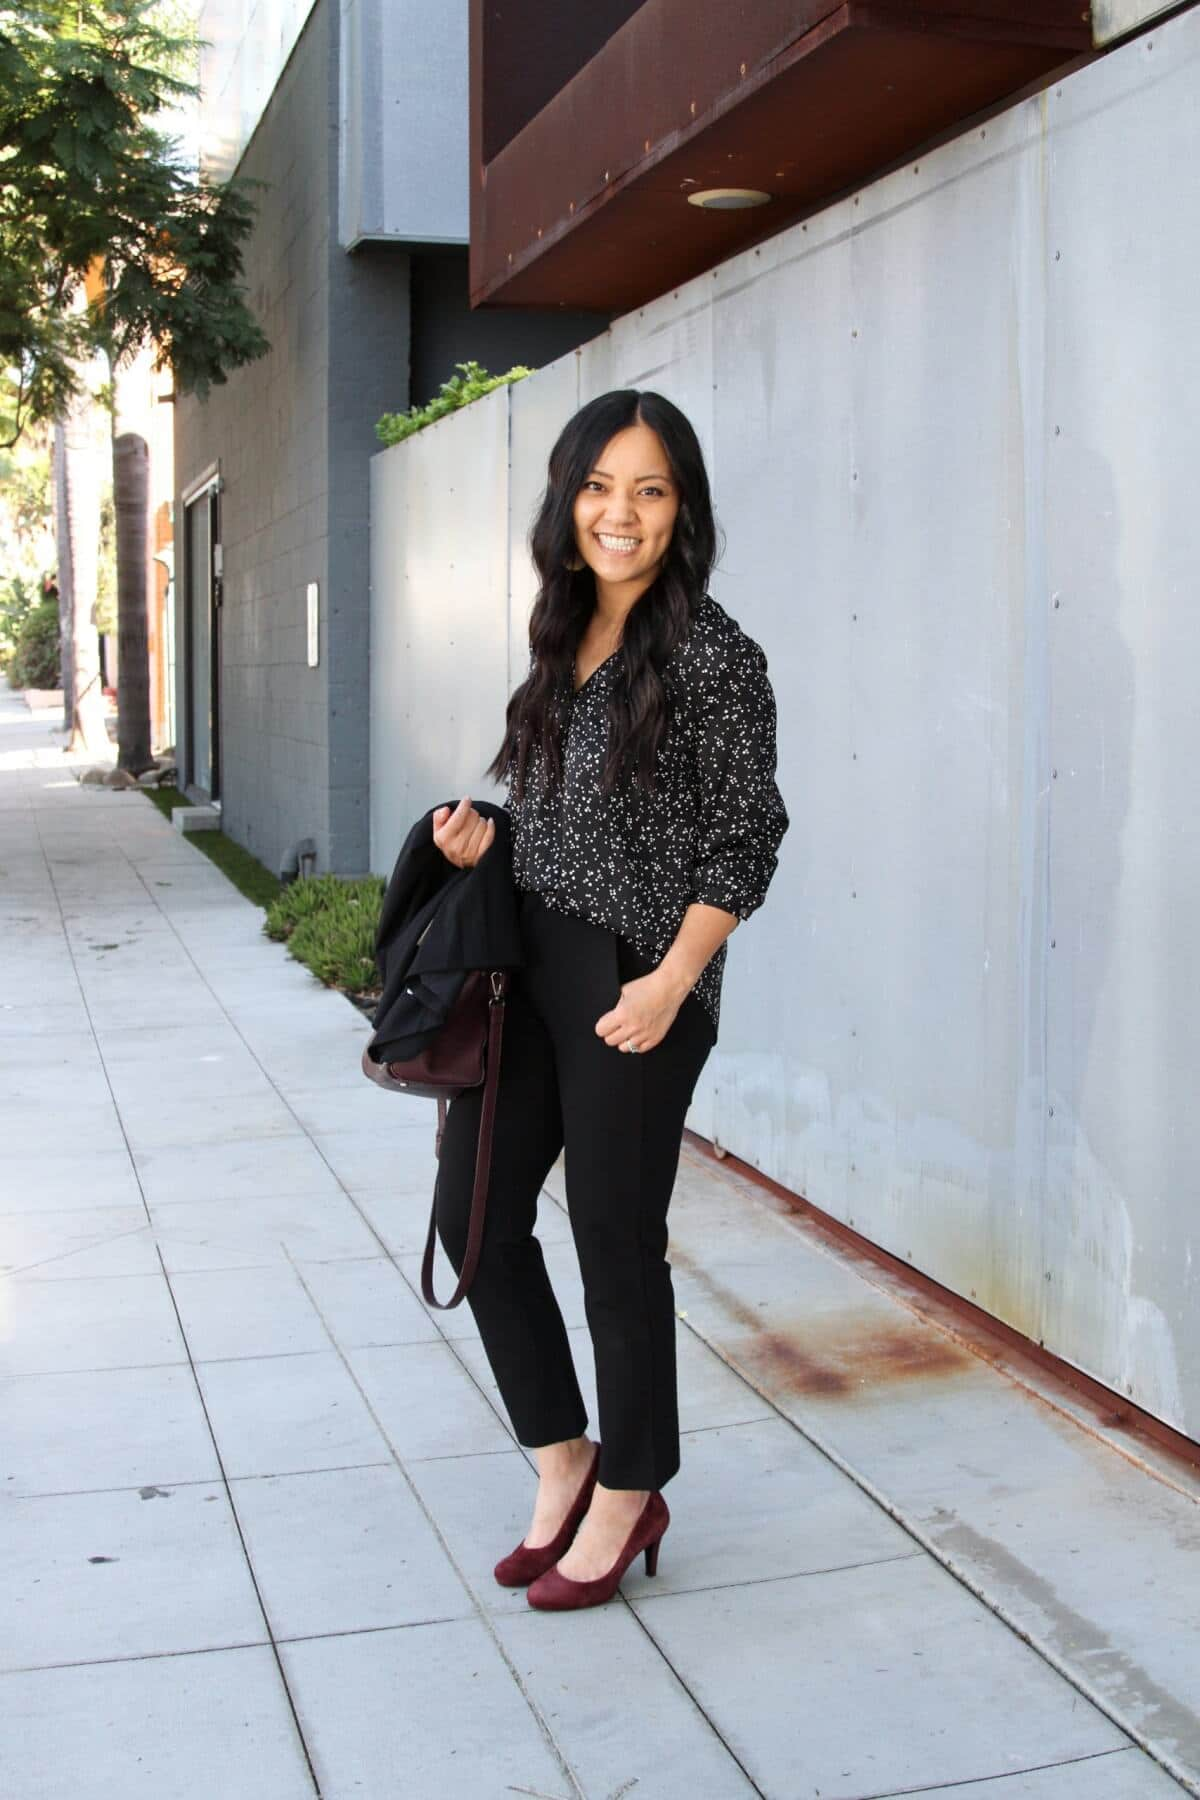 Black and White Spotted Blouse, Black Blazer, Black Ankle Pants, Maroon Suede Heels, and Maroon Bag Outfit Comfy Business Casual Outfit